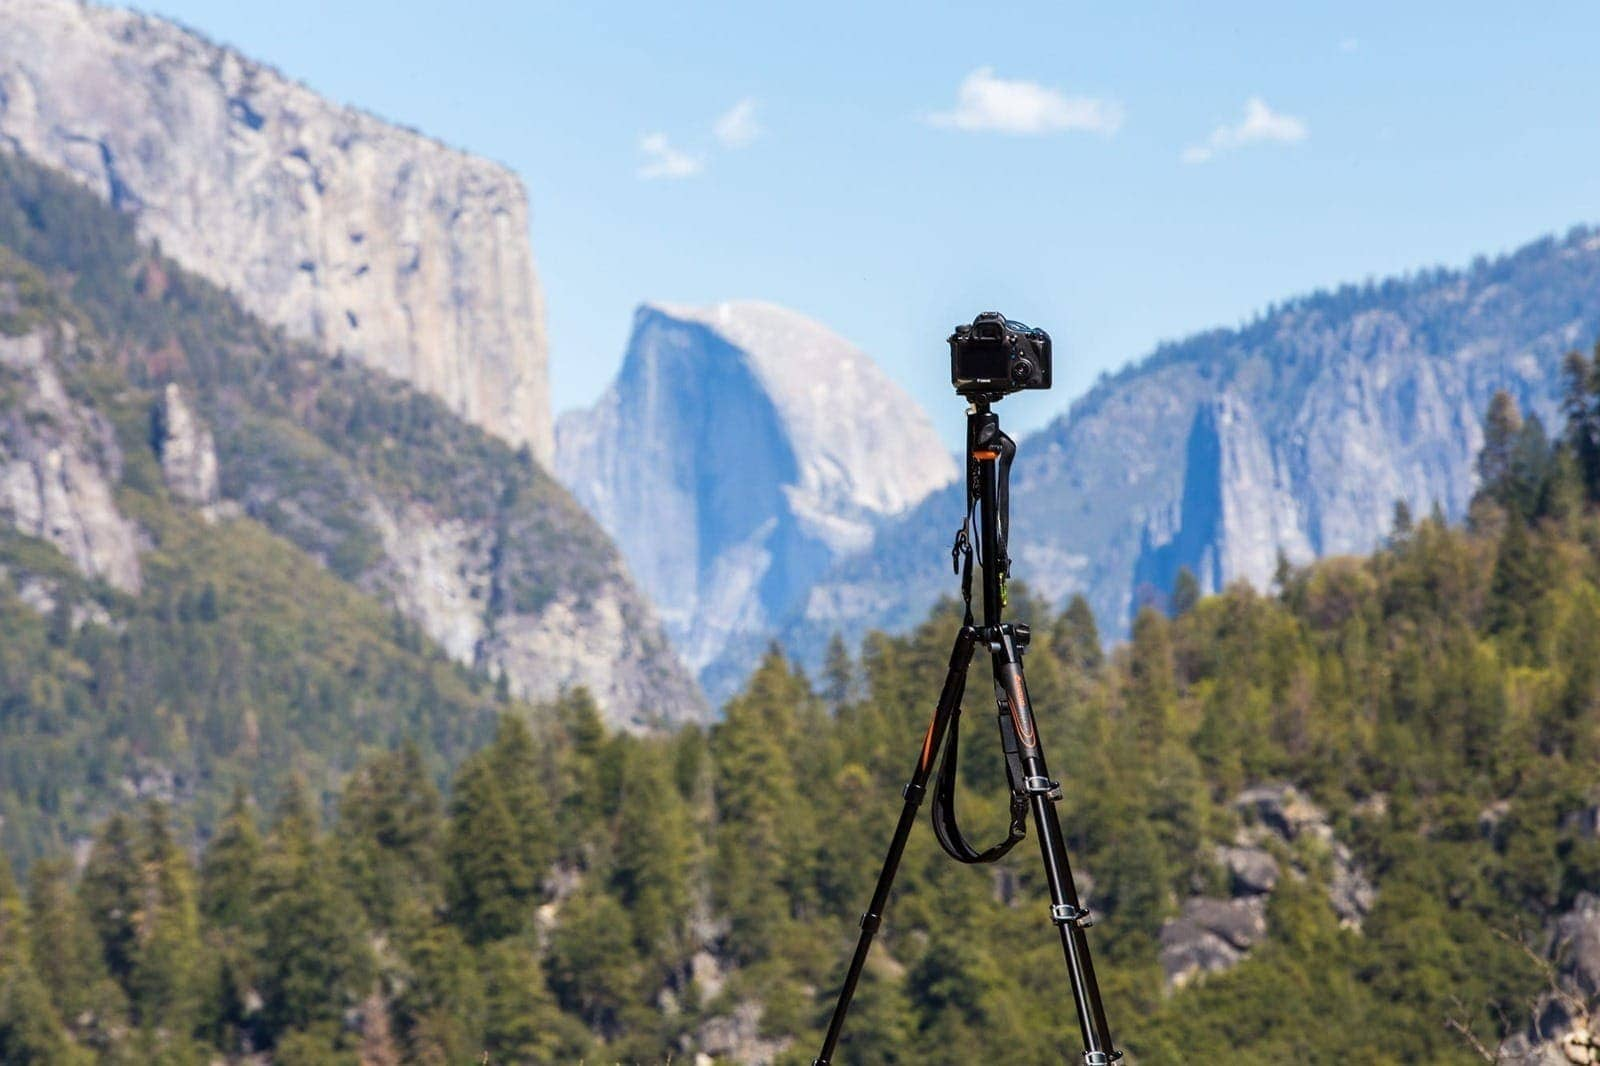 Vanguard tripod view of Half Dome